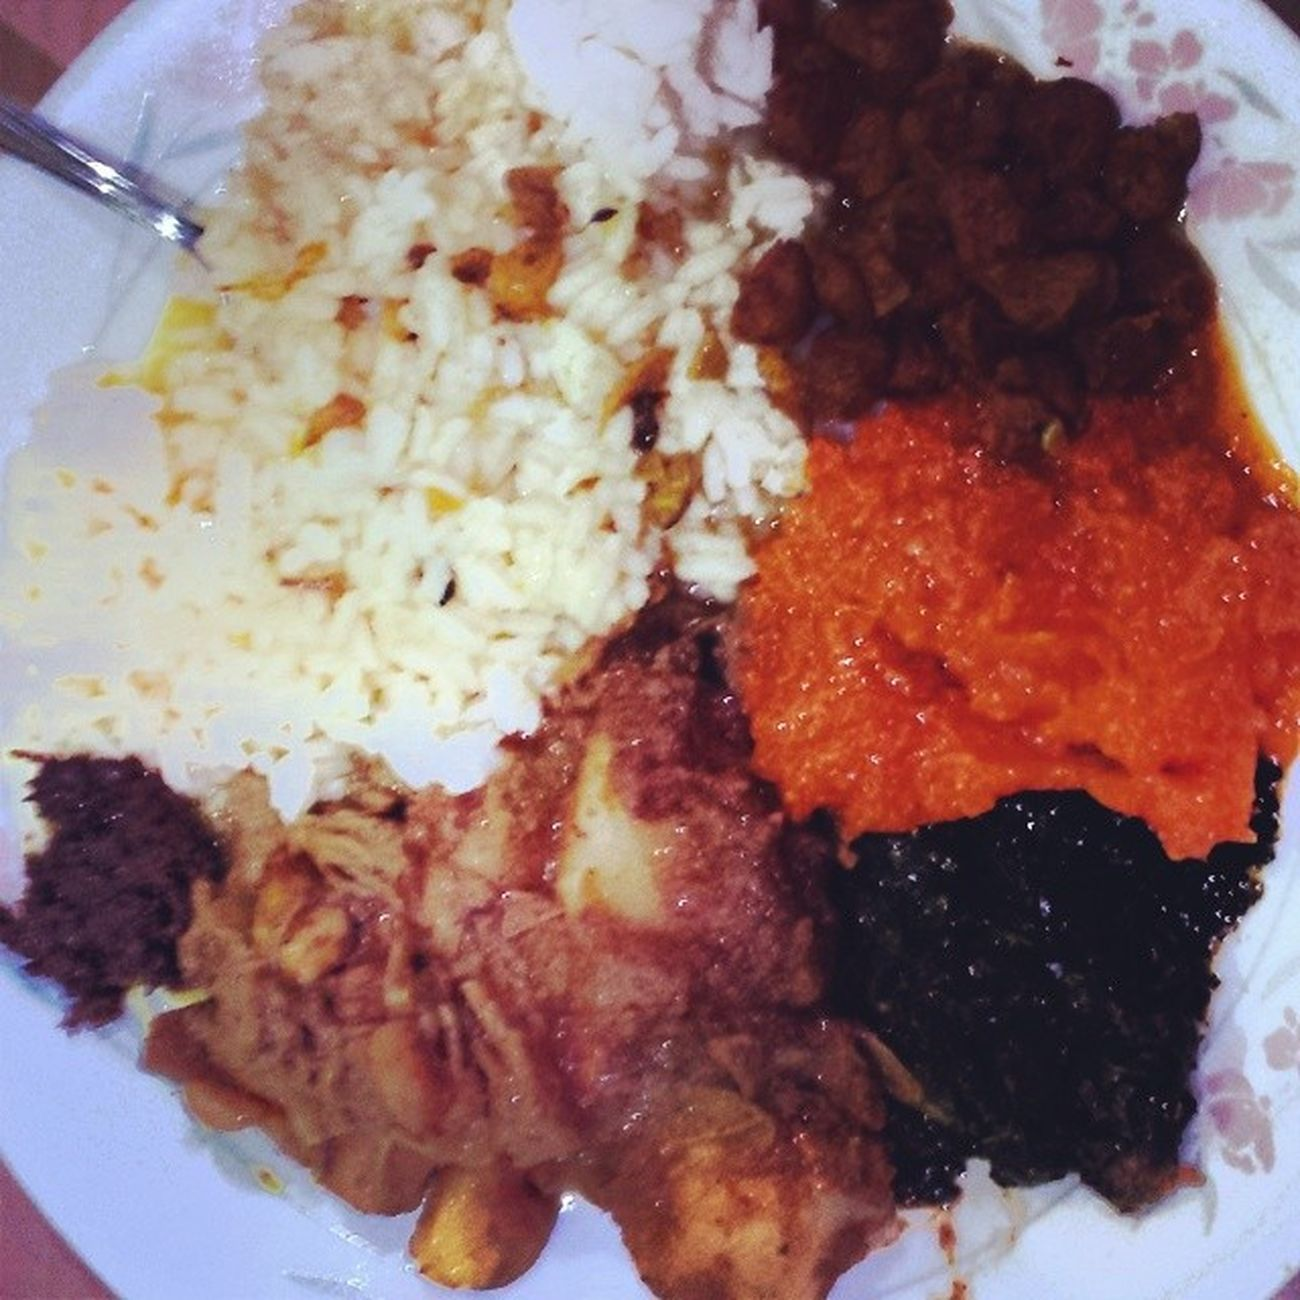 Leftovers from my havan!!! Bhojan 7curry Dhall Catahar pumpkin bhagee carhee choplets aloocurry roti rice hindu indianculture havan lash